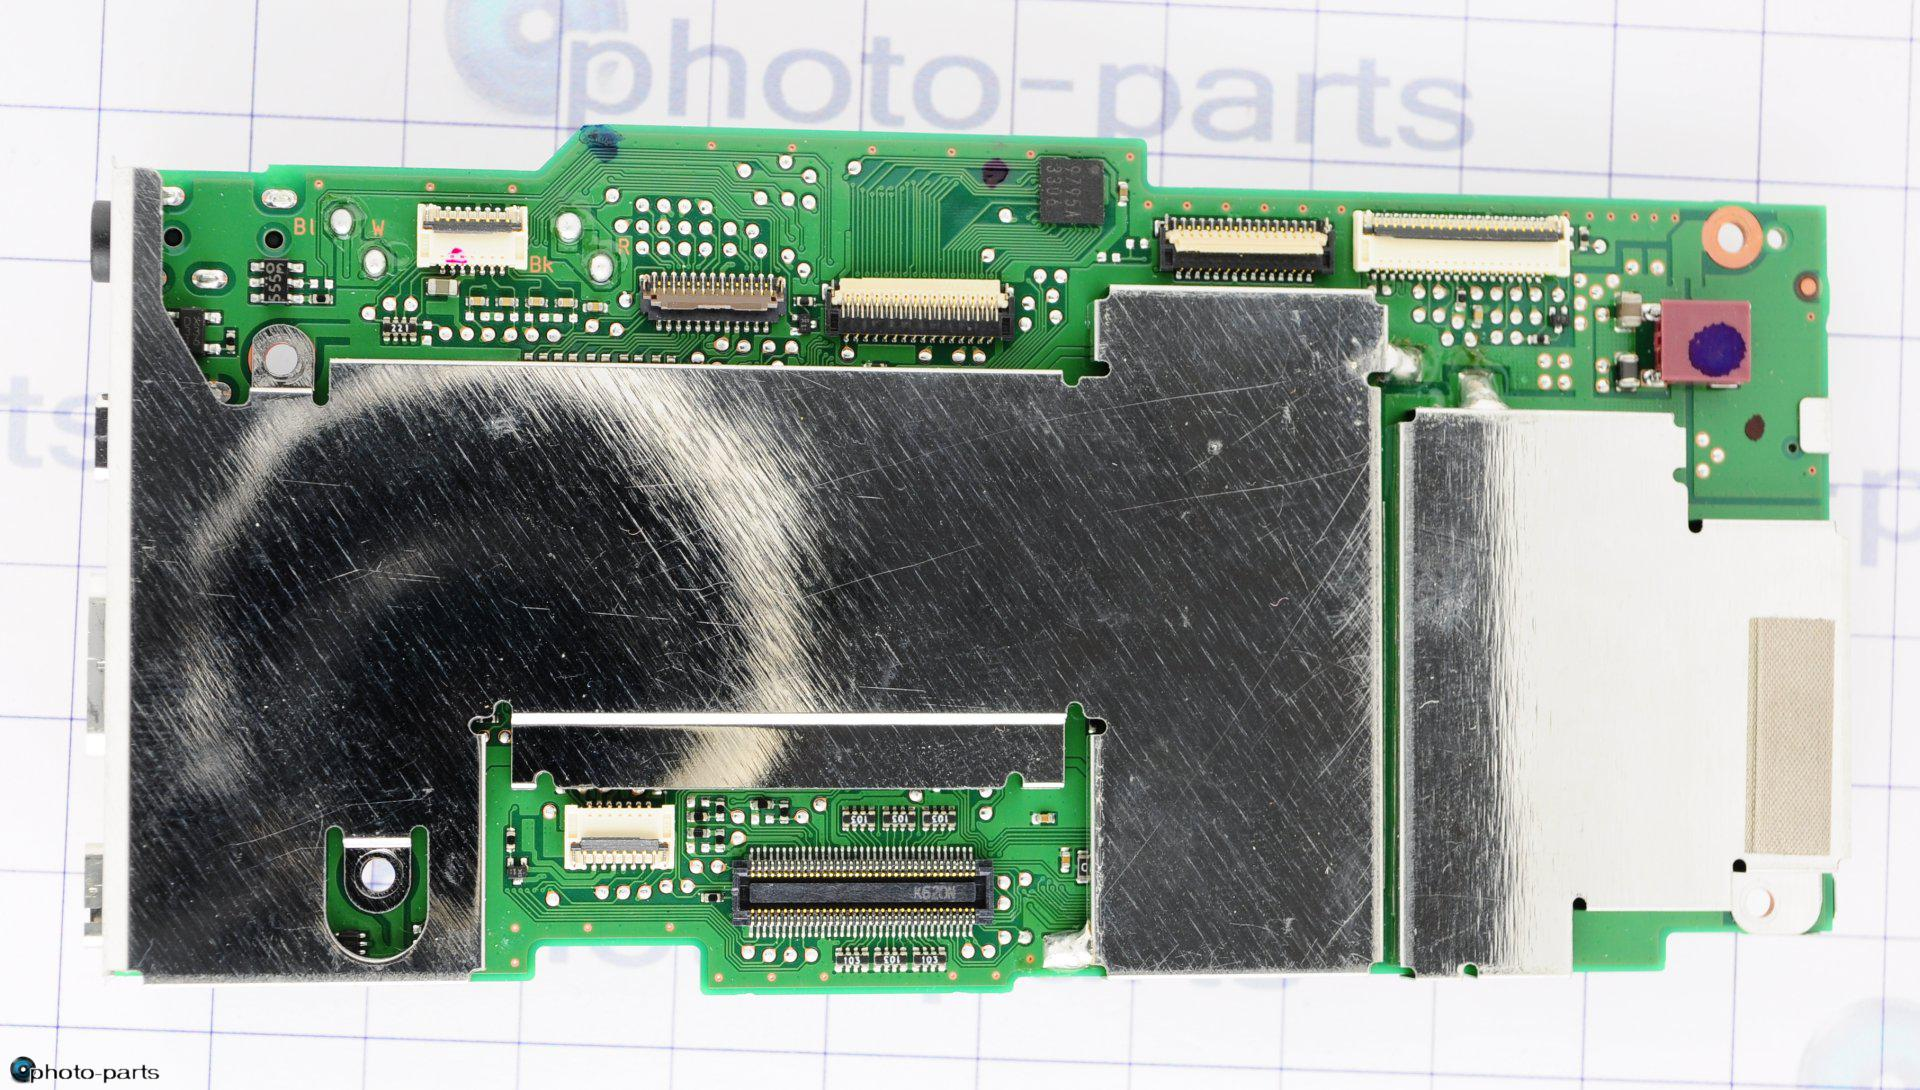 Photo-parts - the internal structure of digital cameras